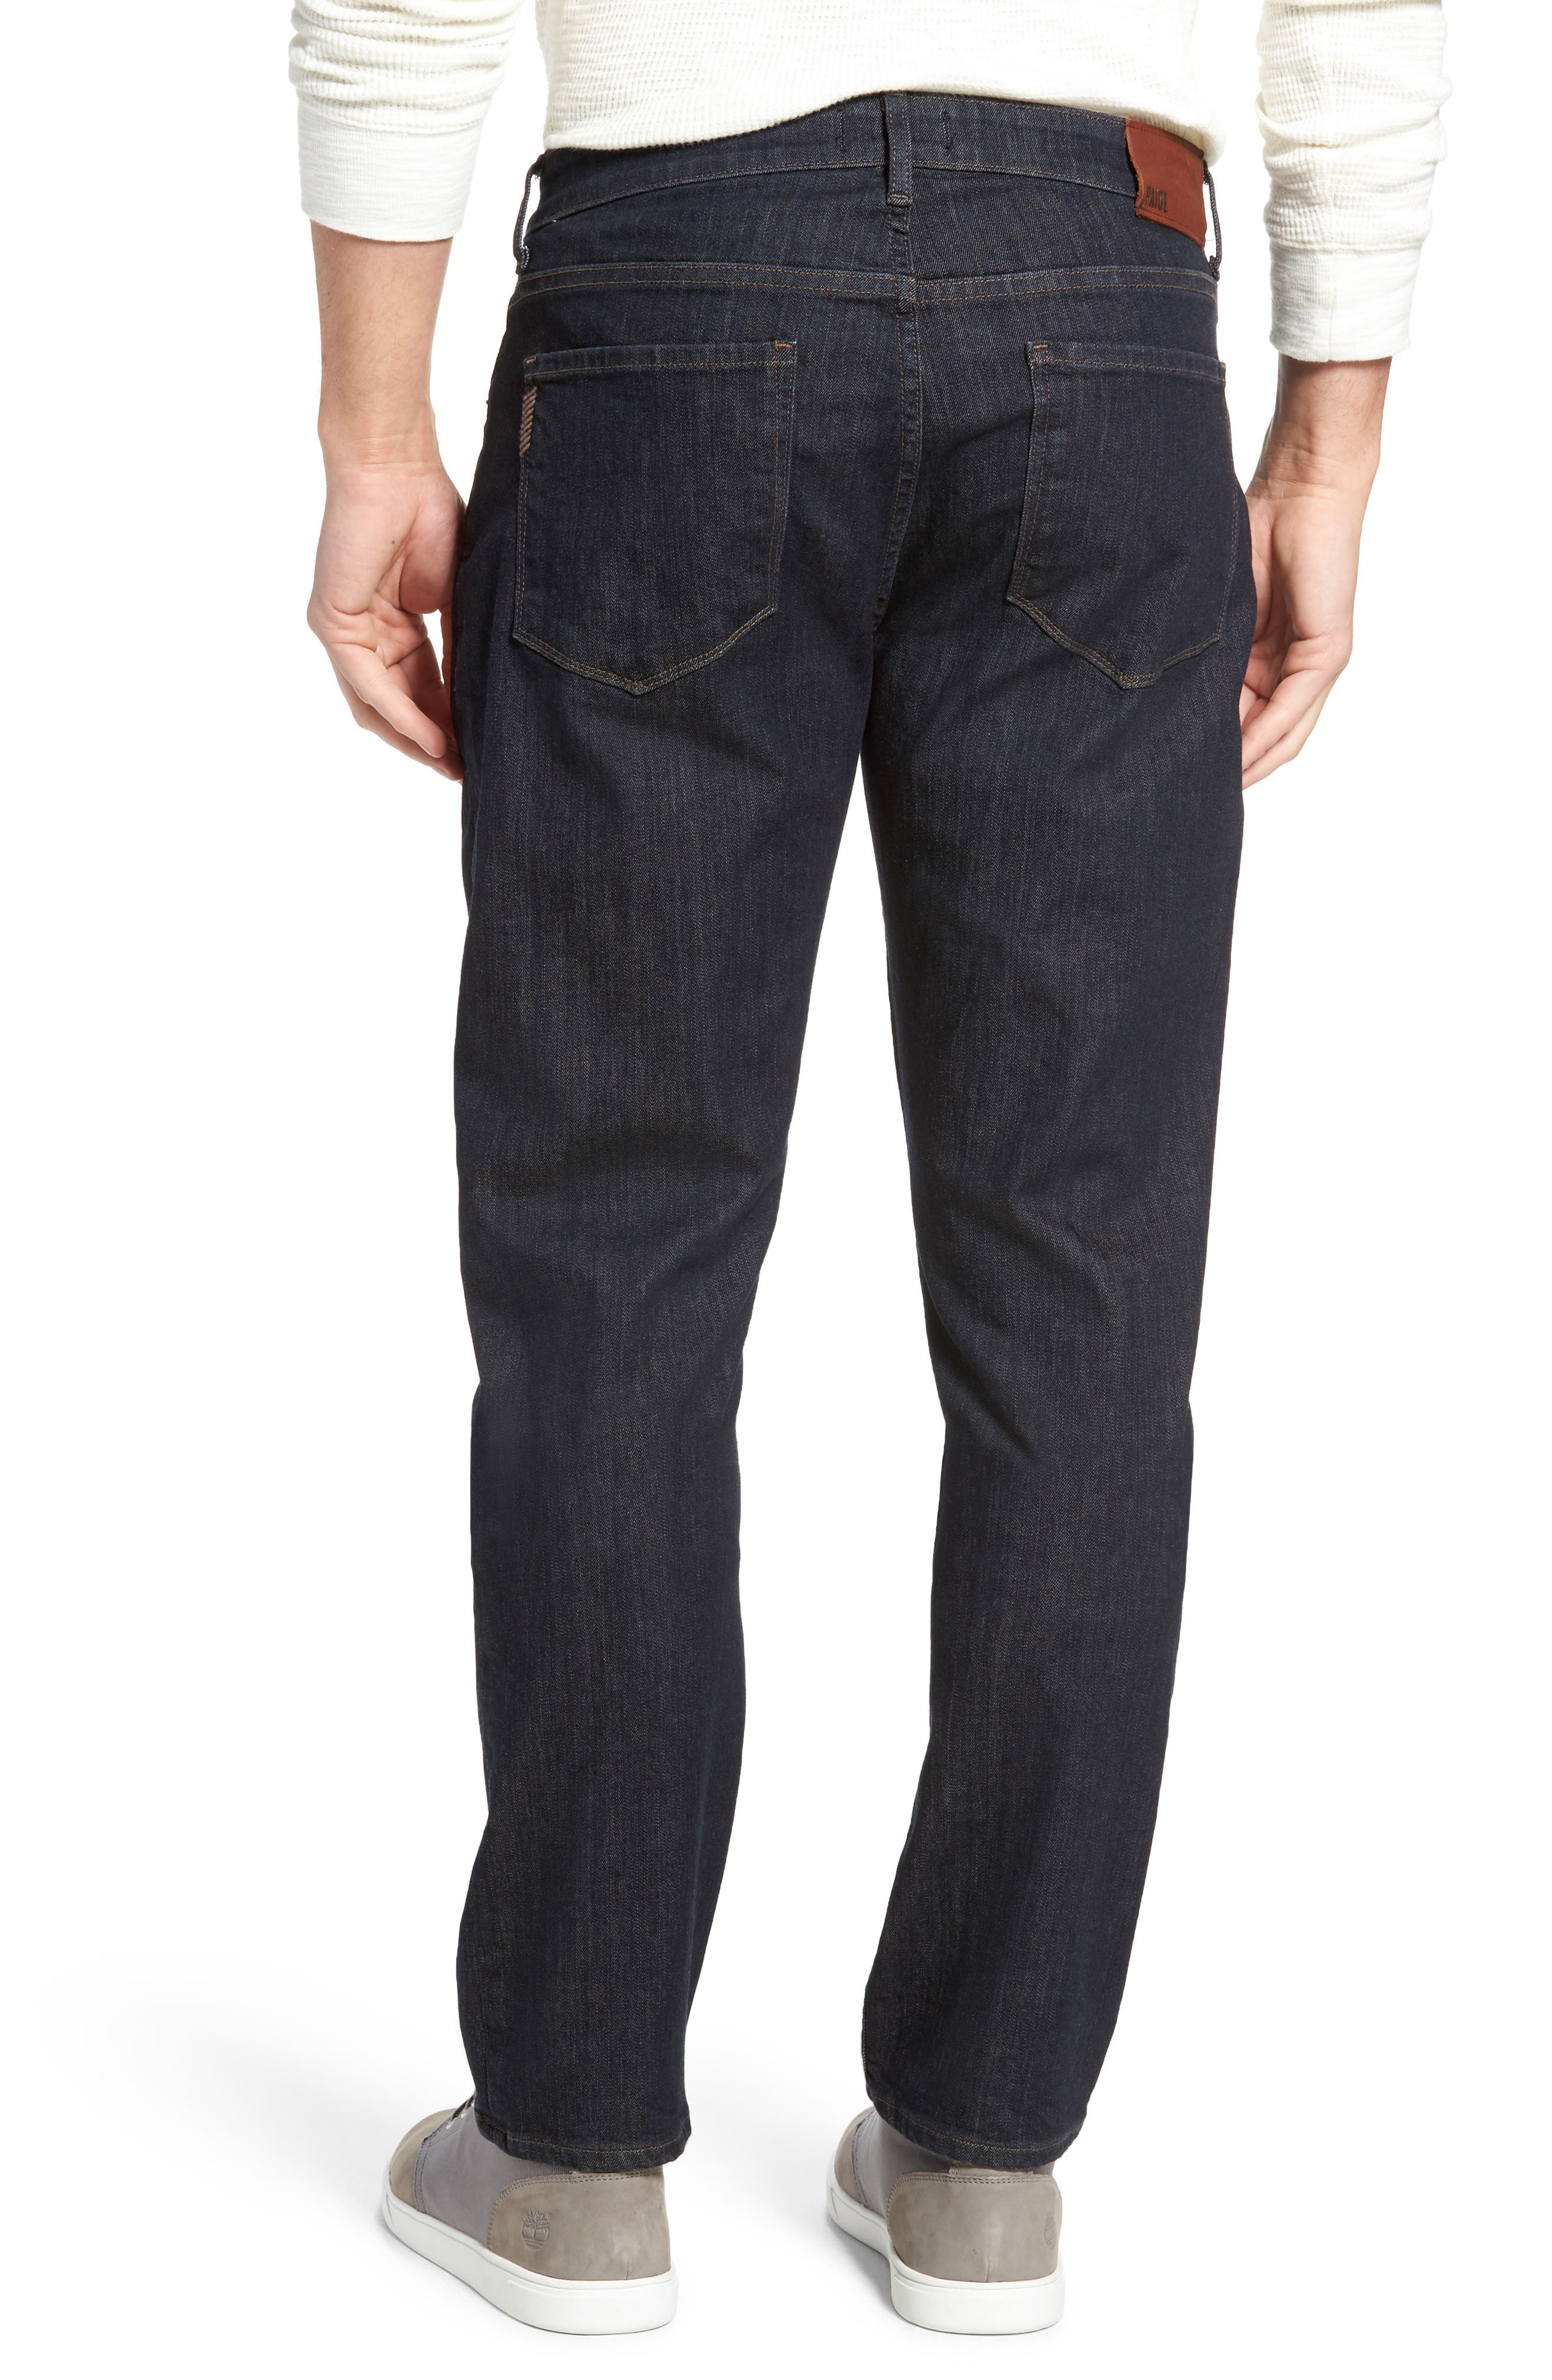 Normandie Straight Leg Jeans,                             Alternate thumbnail 2, color,                             FILLMORE